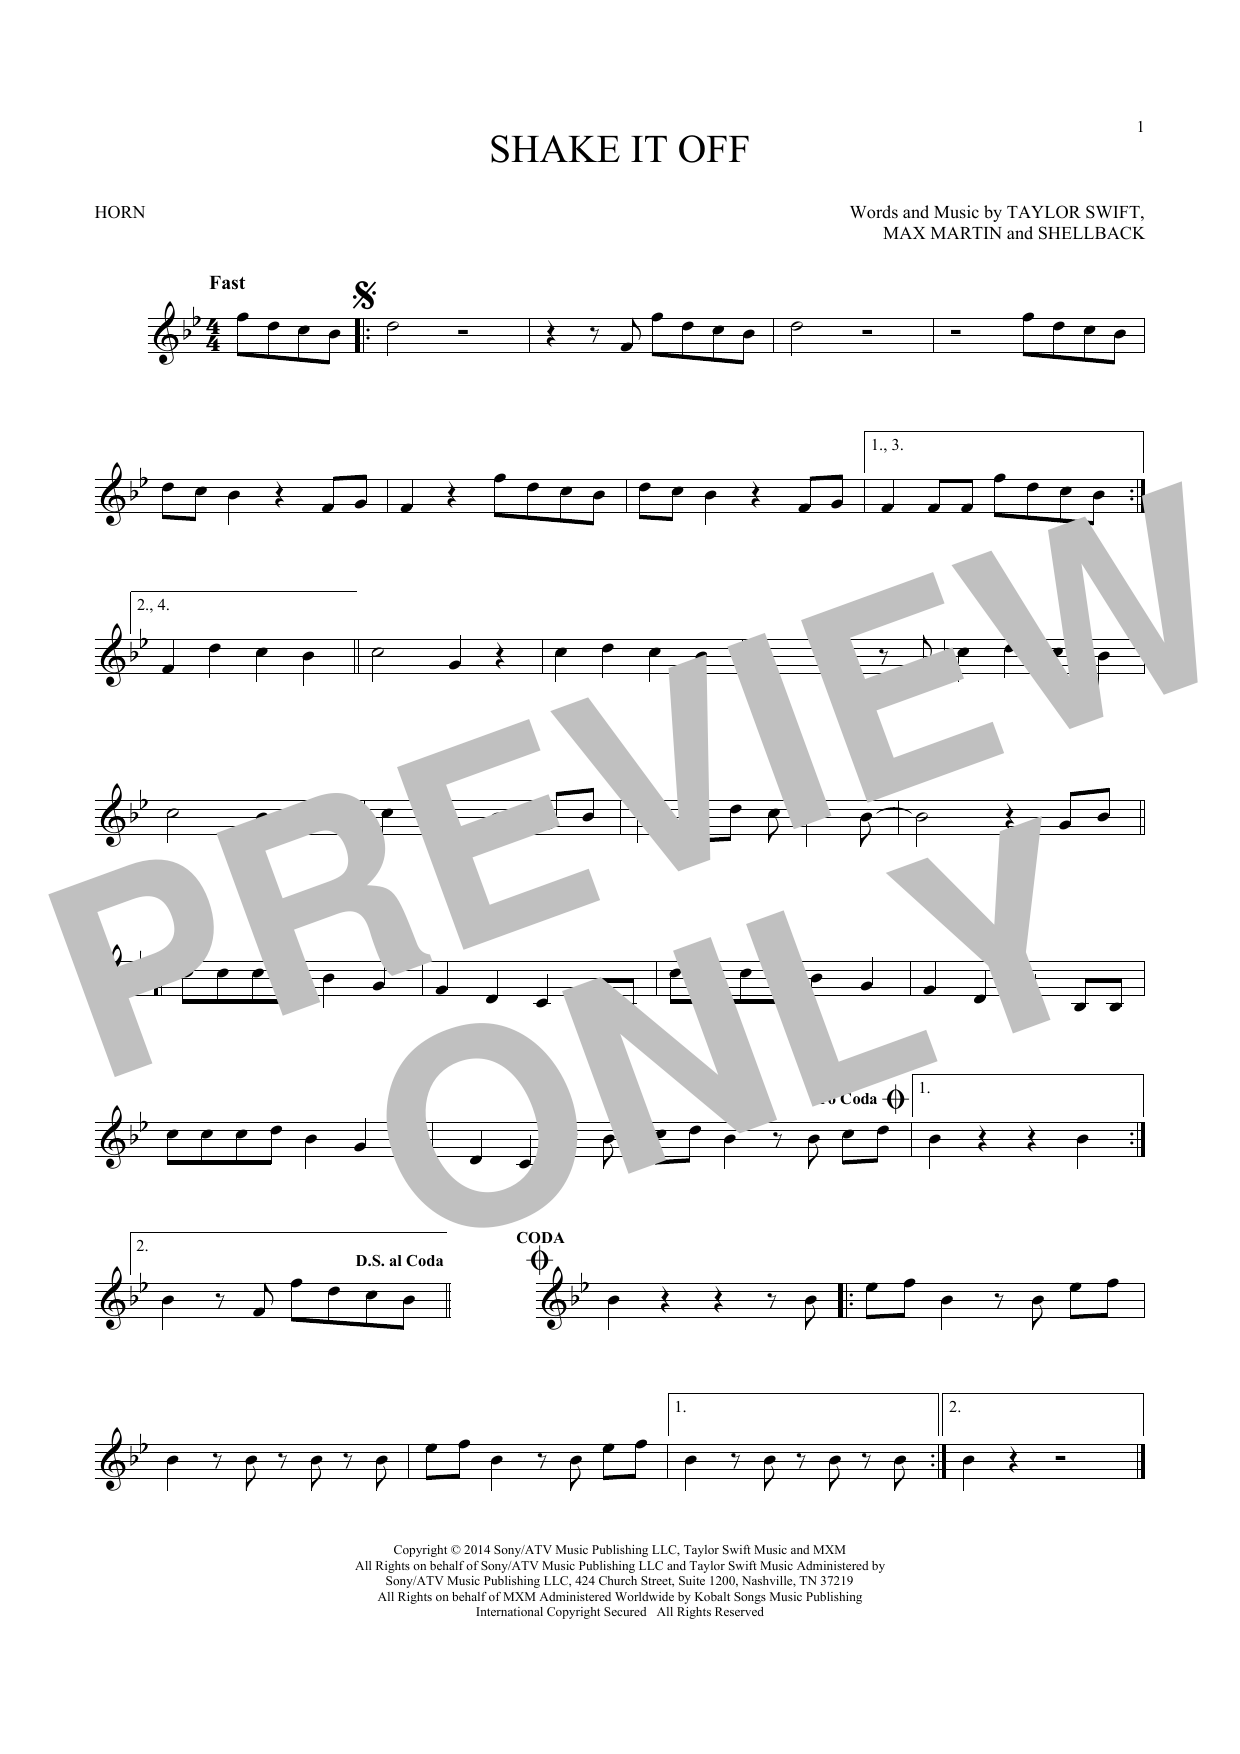 Shake It Off (French Horn Solo)